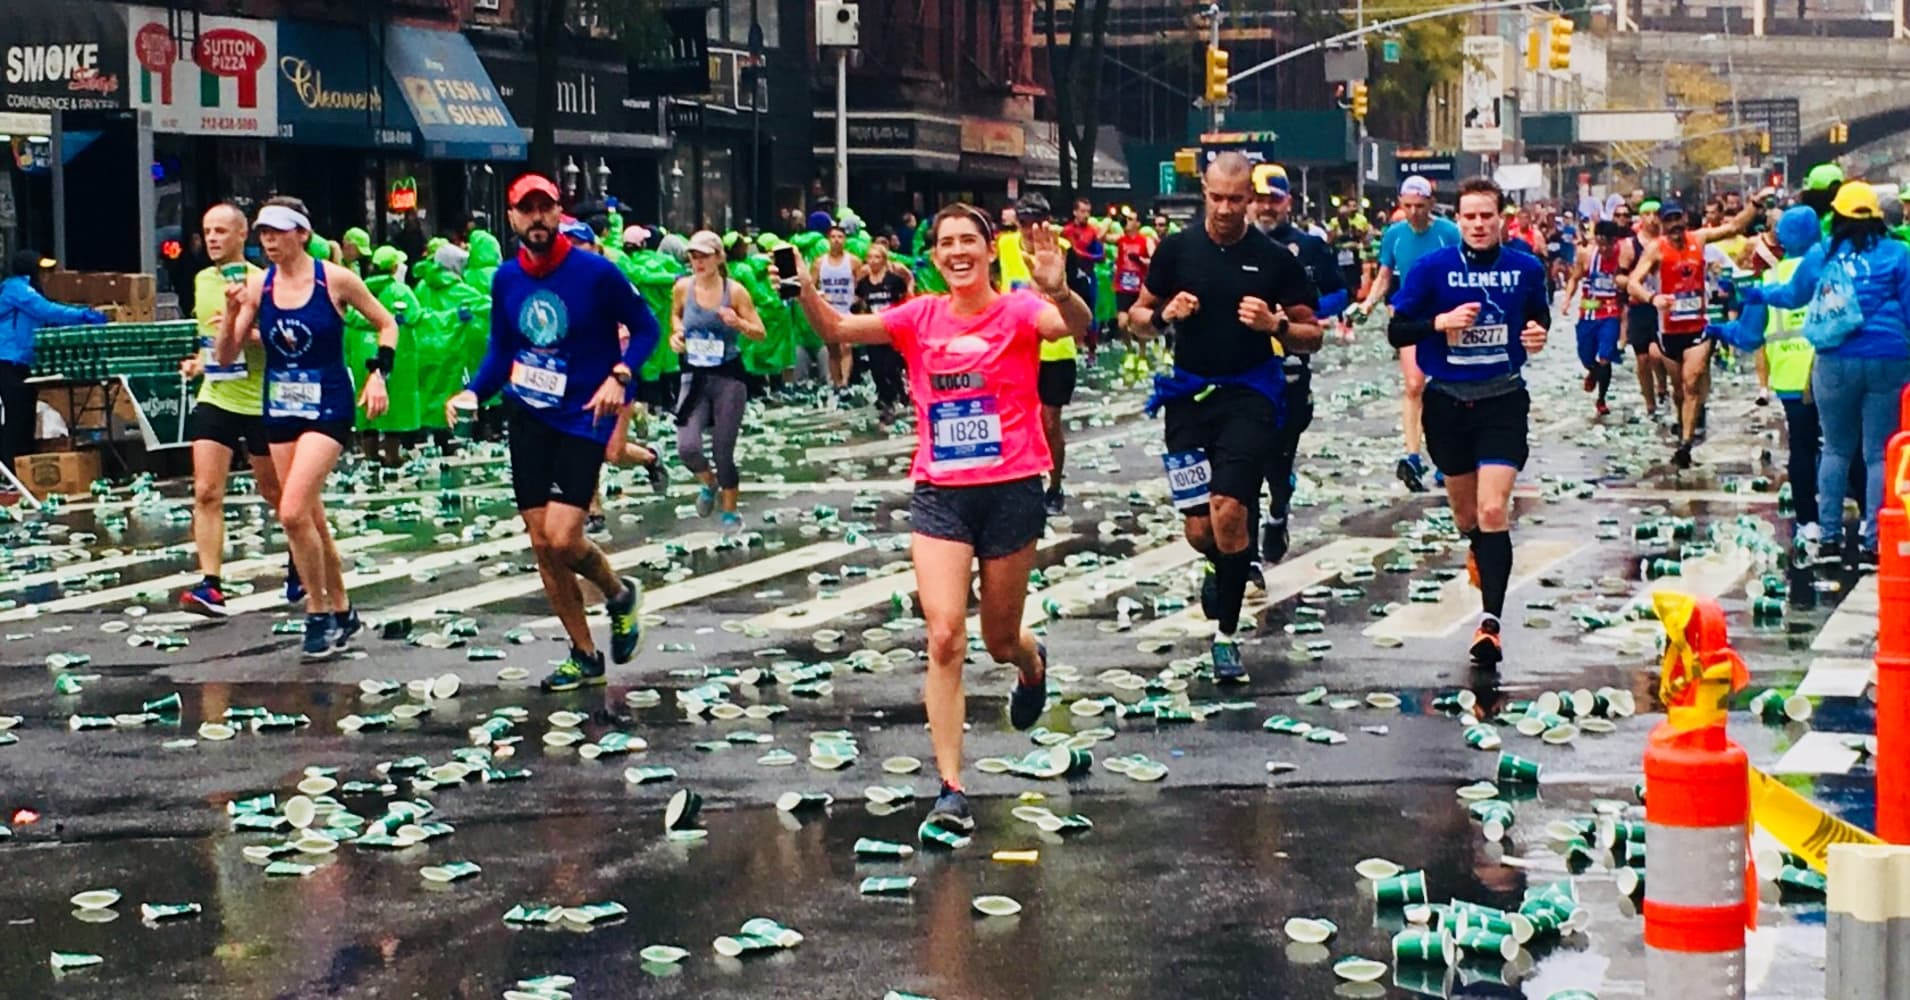 I Spent Over 500 To Run The 2017 NYC Marathon And It Was